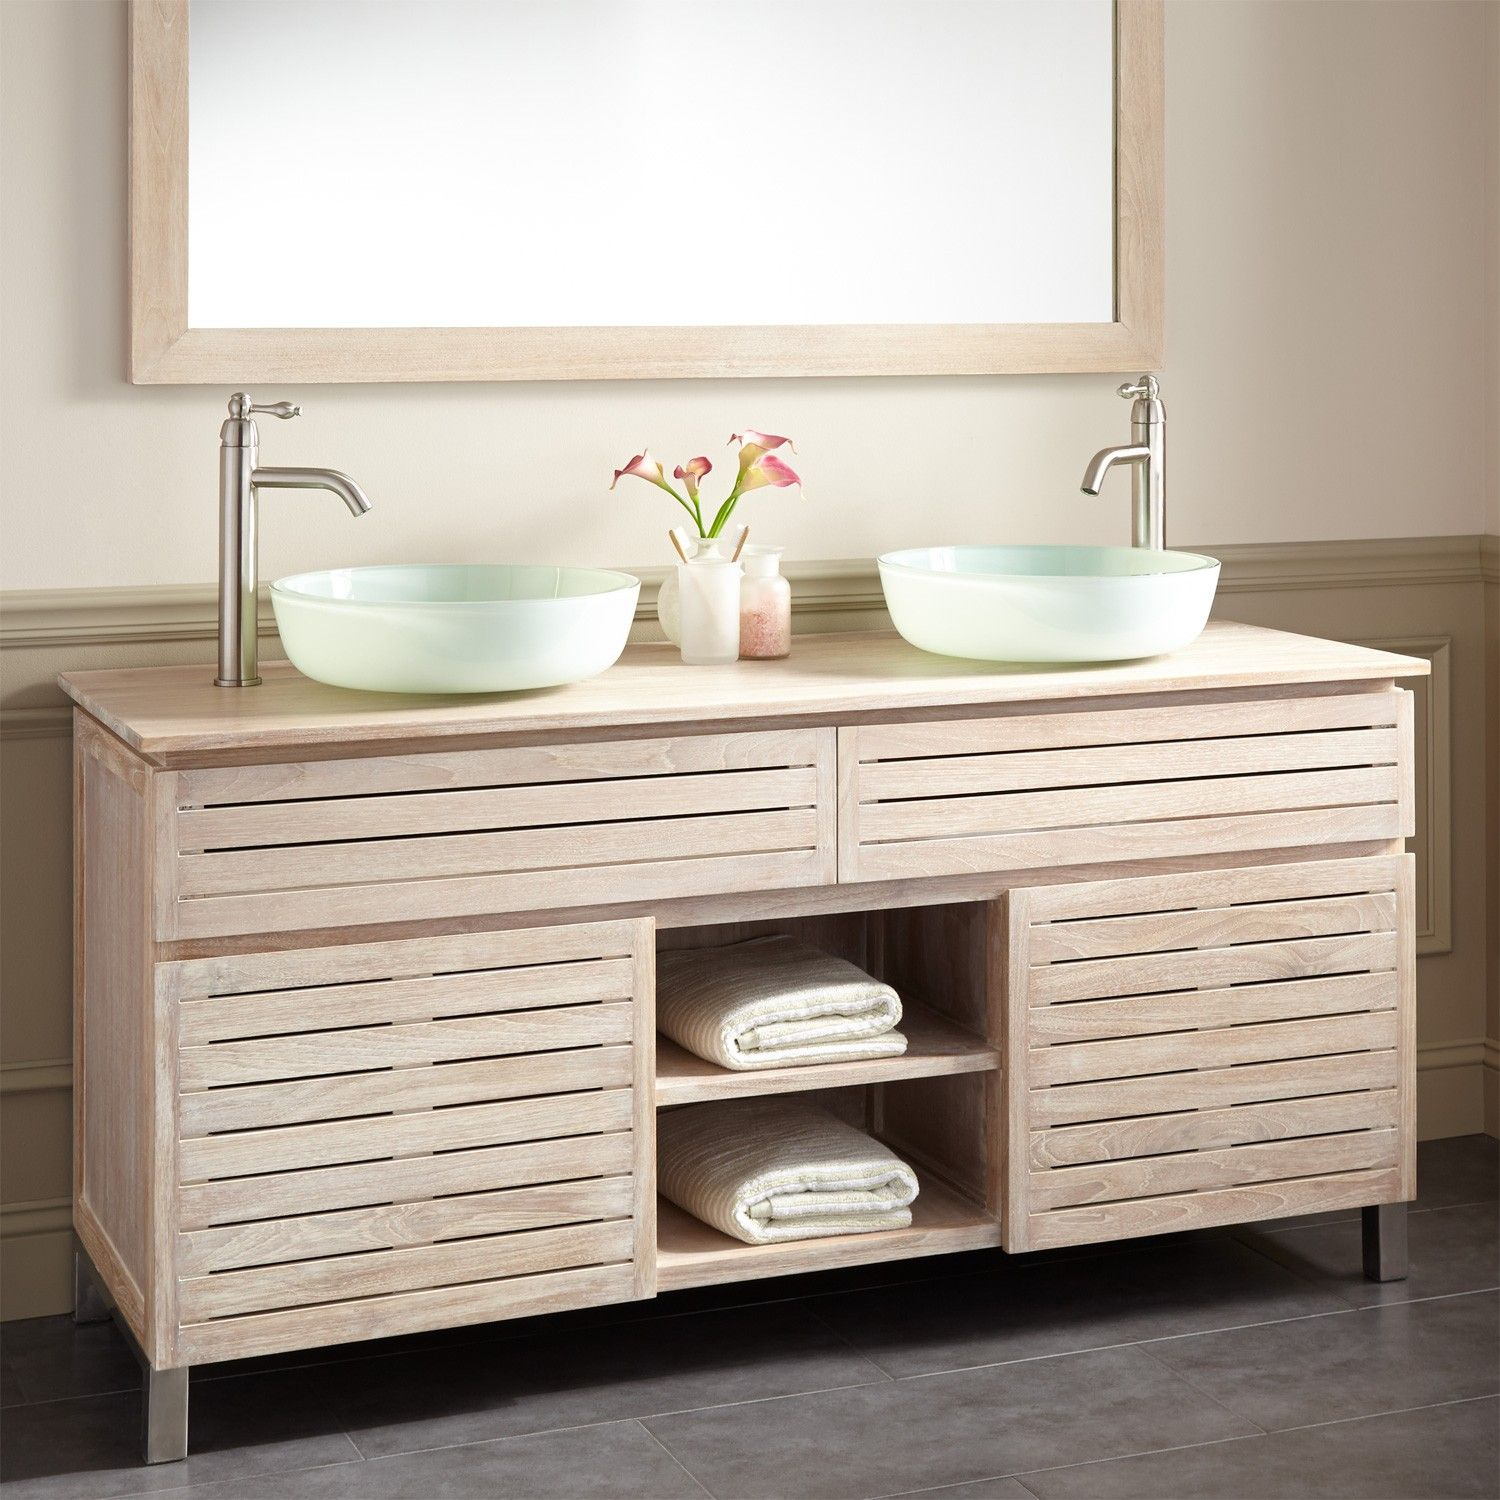 Best 60 Caldwell Teak Double Vessel Sink Vanity Whitewash 400 x 300